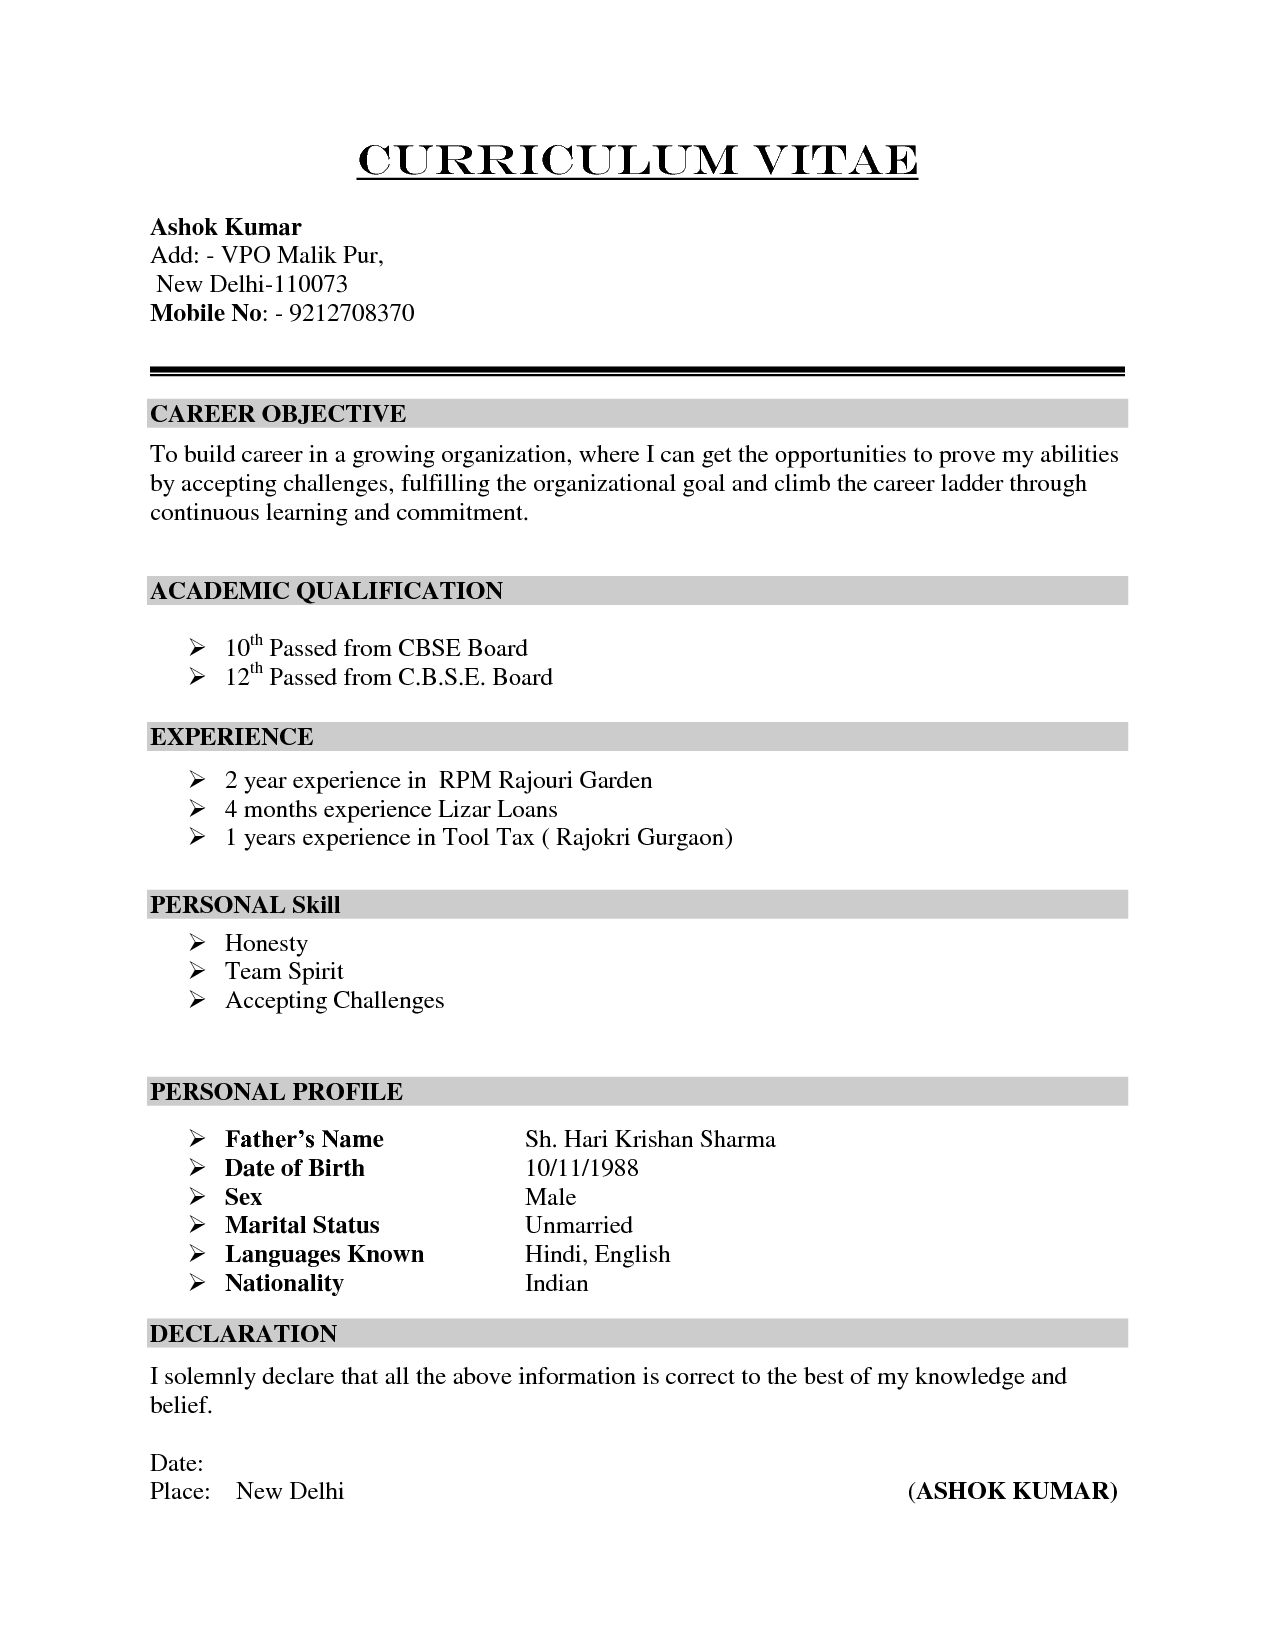 curriculum vitea samples latest resume anxjvo0r